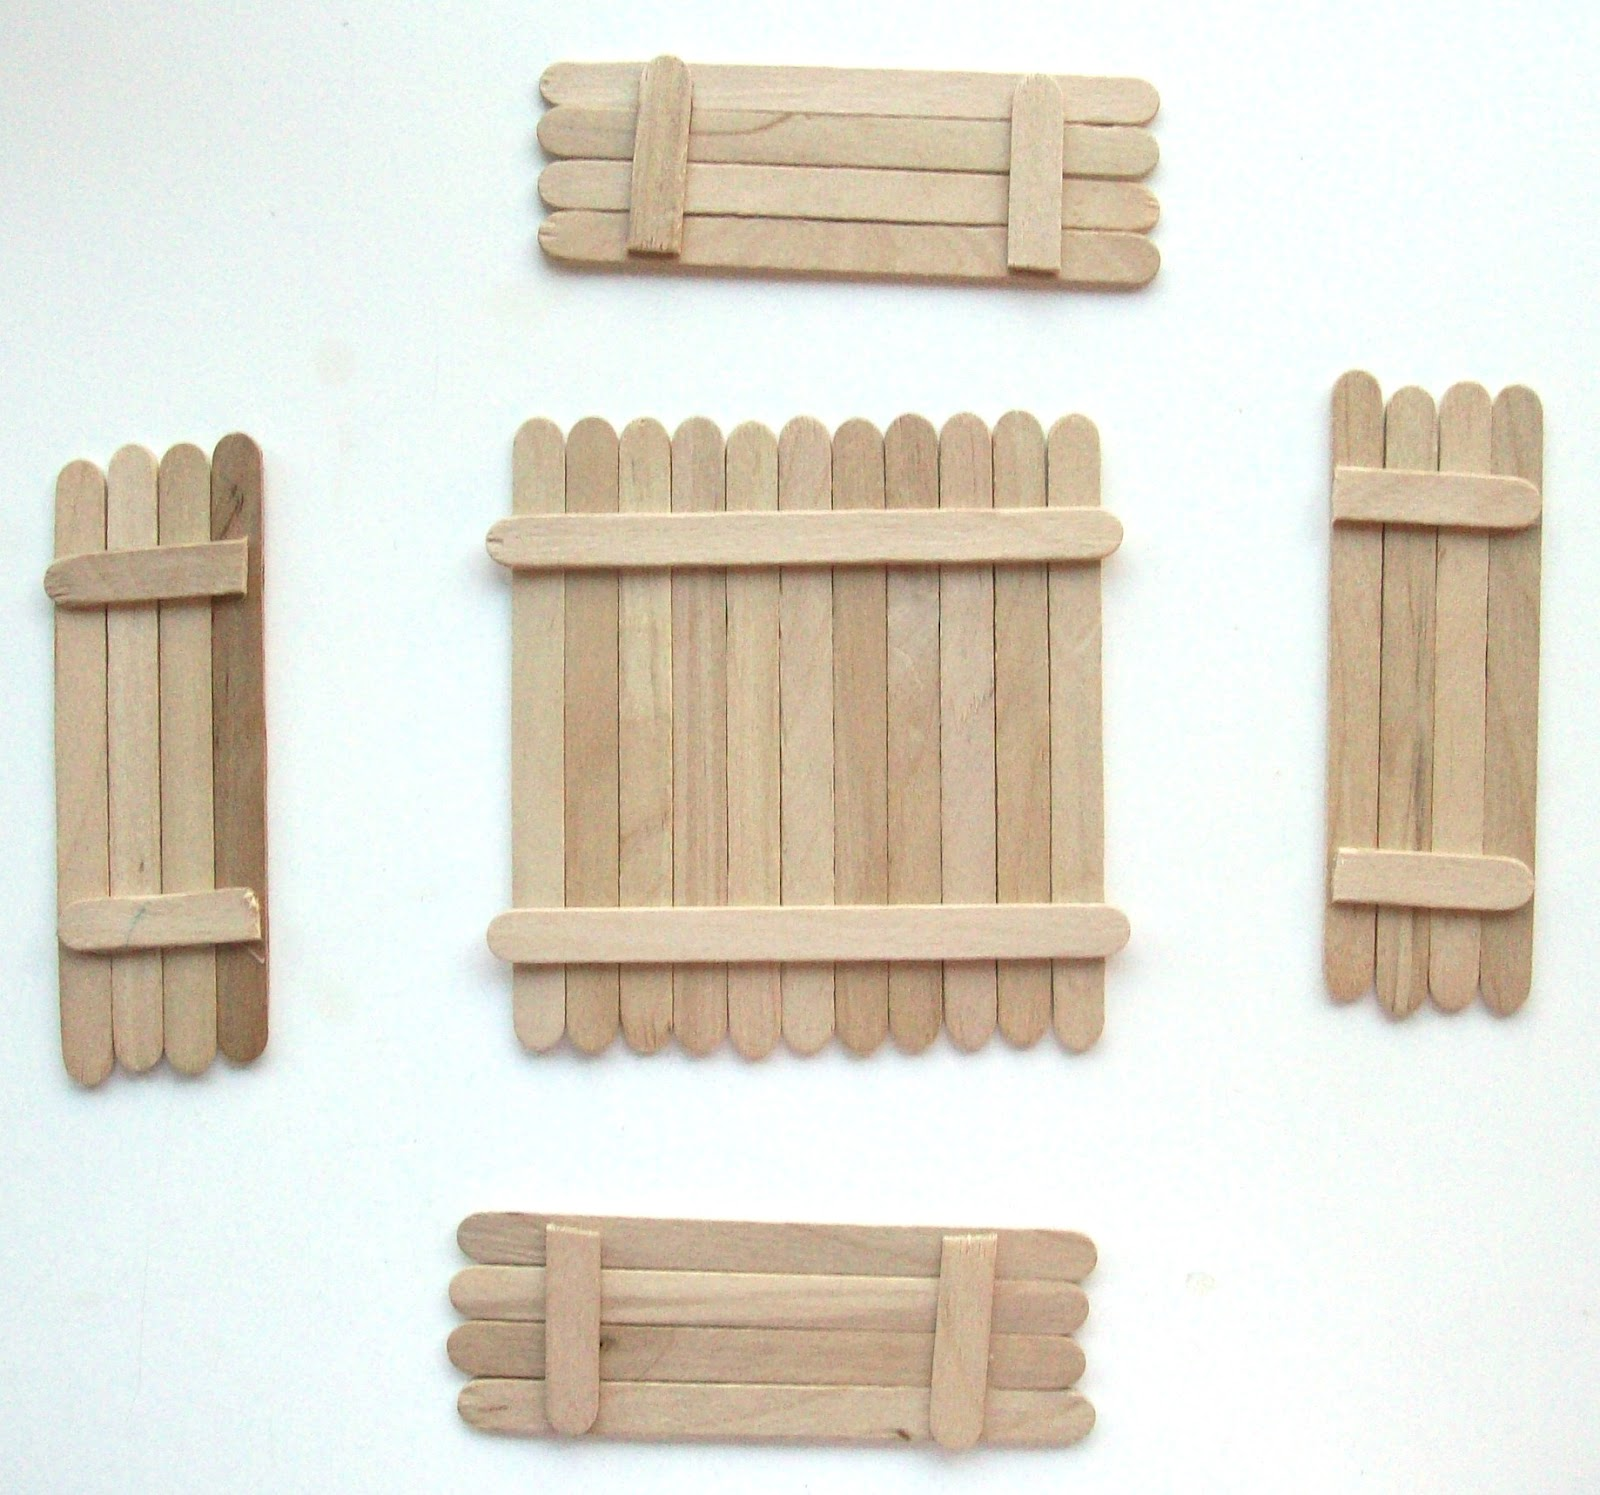 House design using popsicle sticks - 104 Days Of Summer Vacation